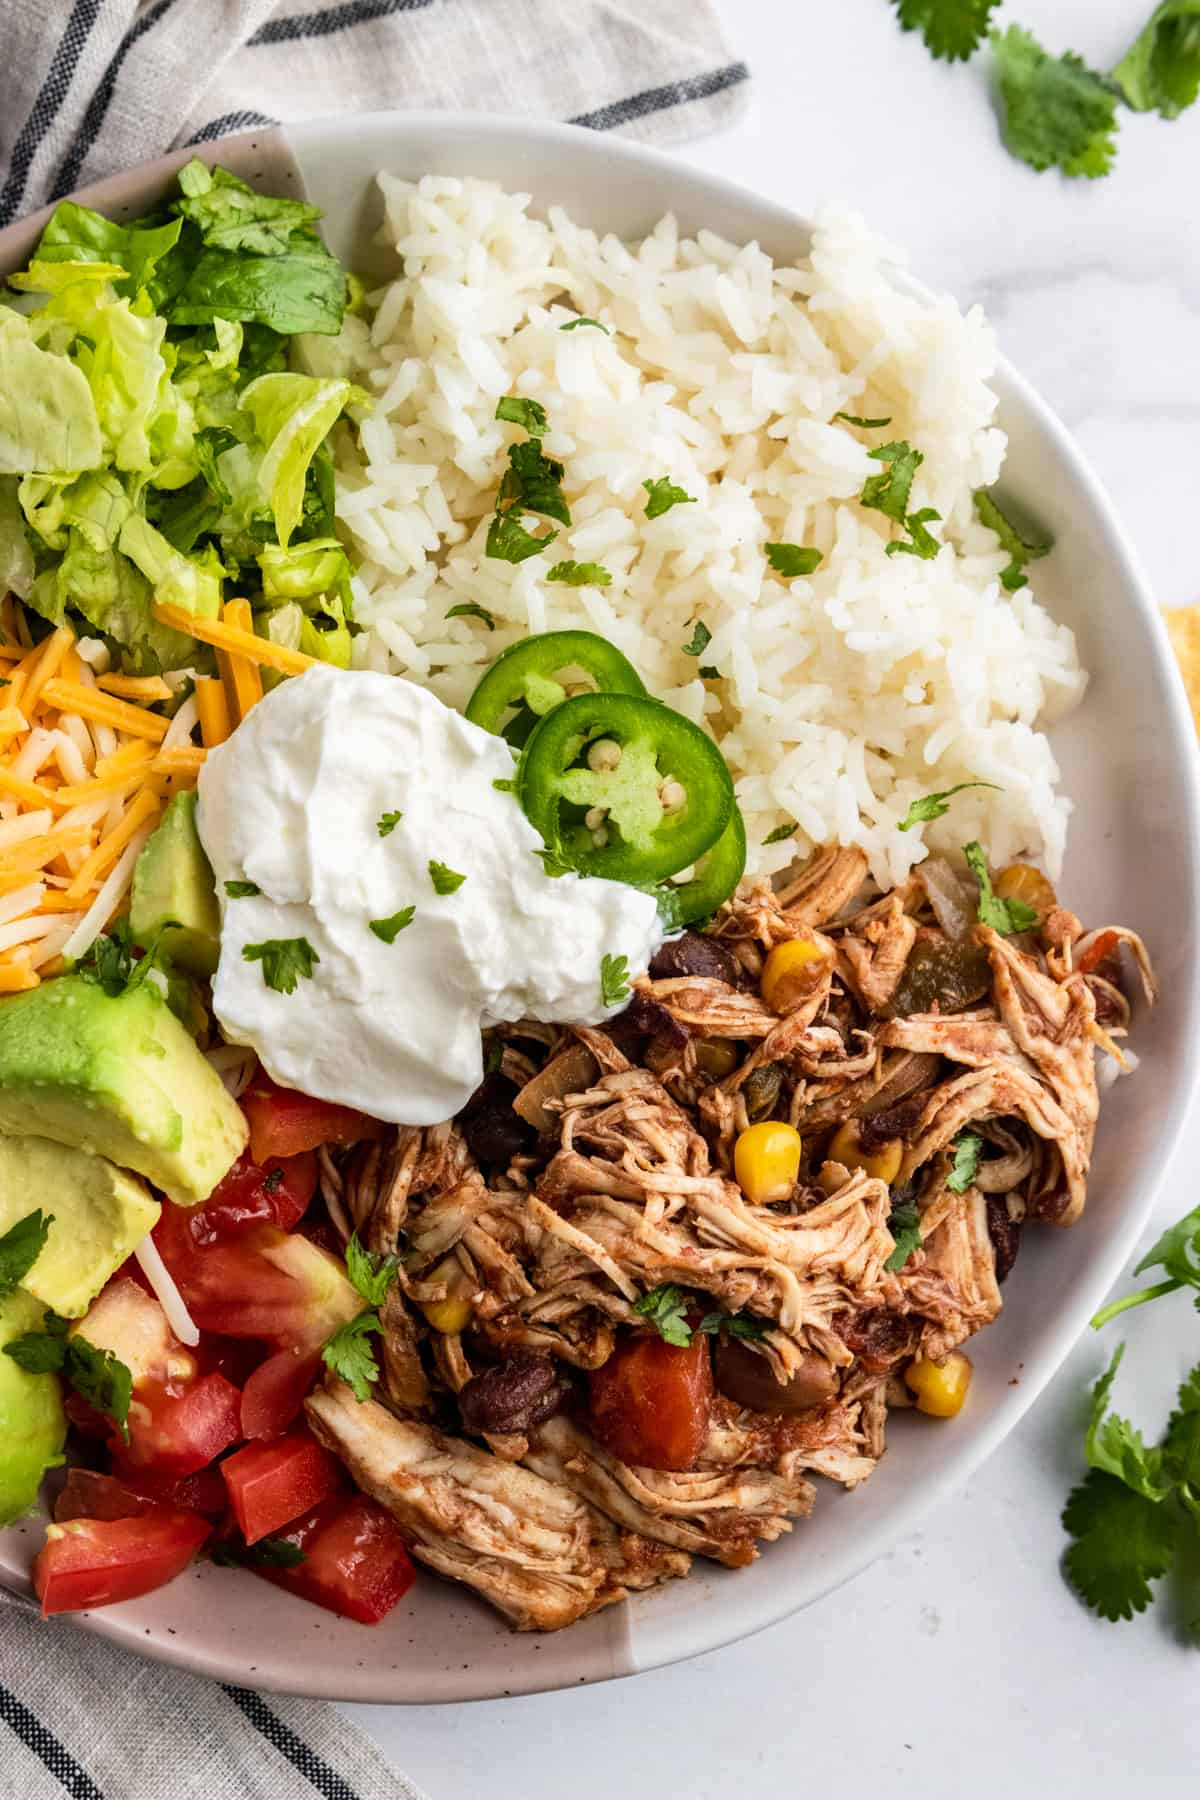 Chicken burrito bowl with lettuce, rice, avocado, tomato, cheese and sour cream.